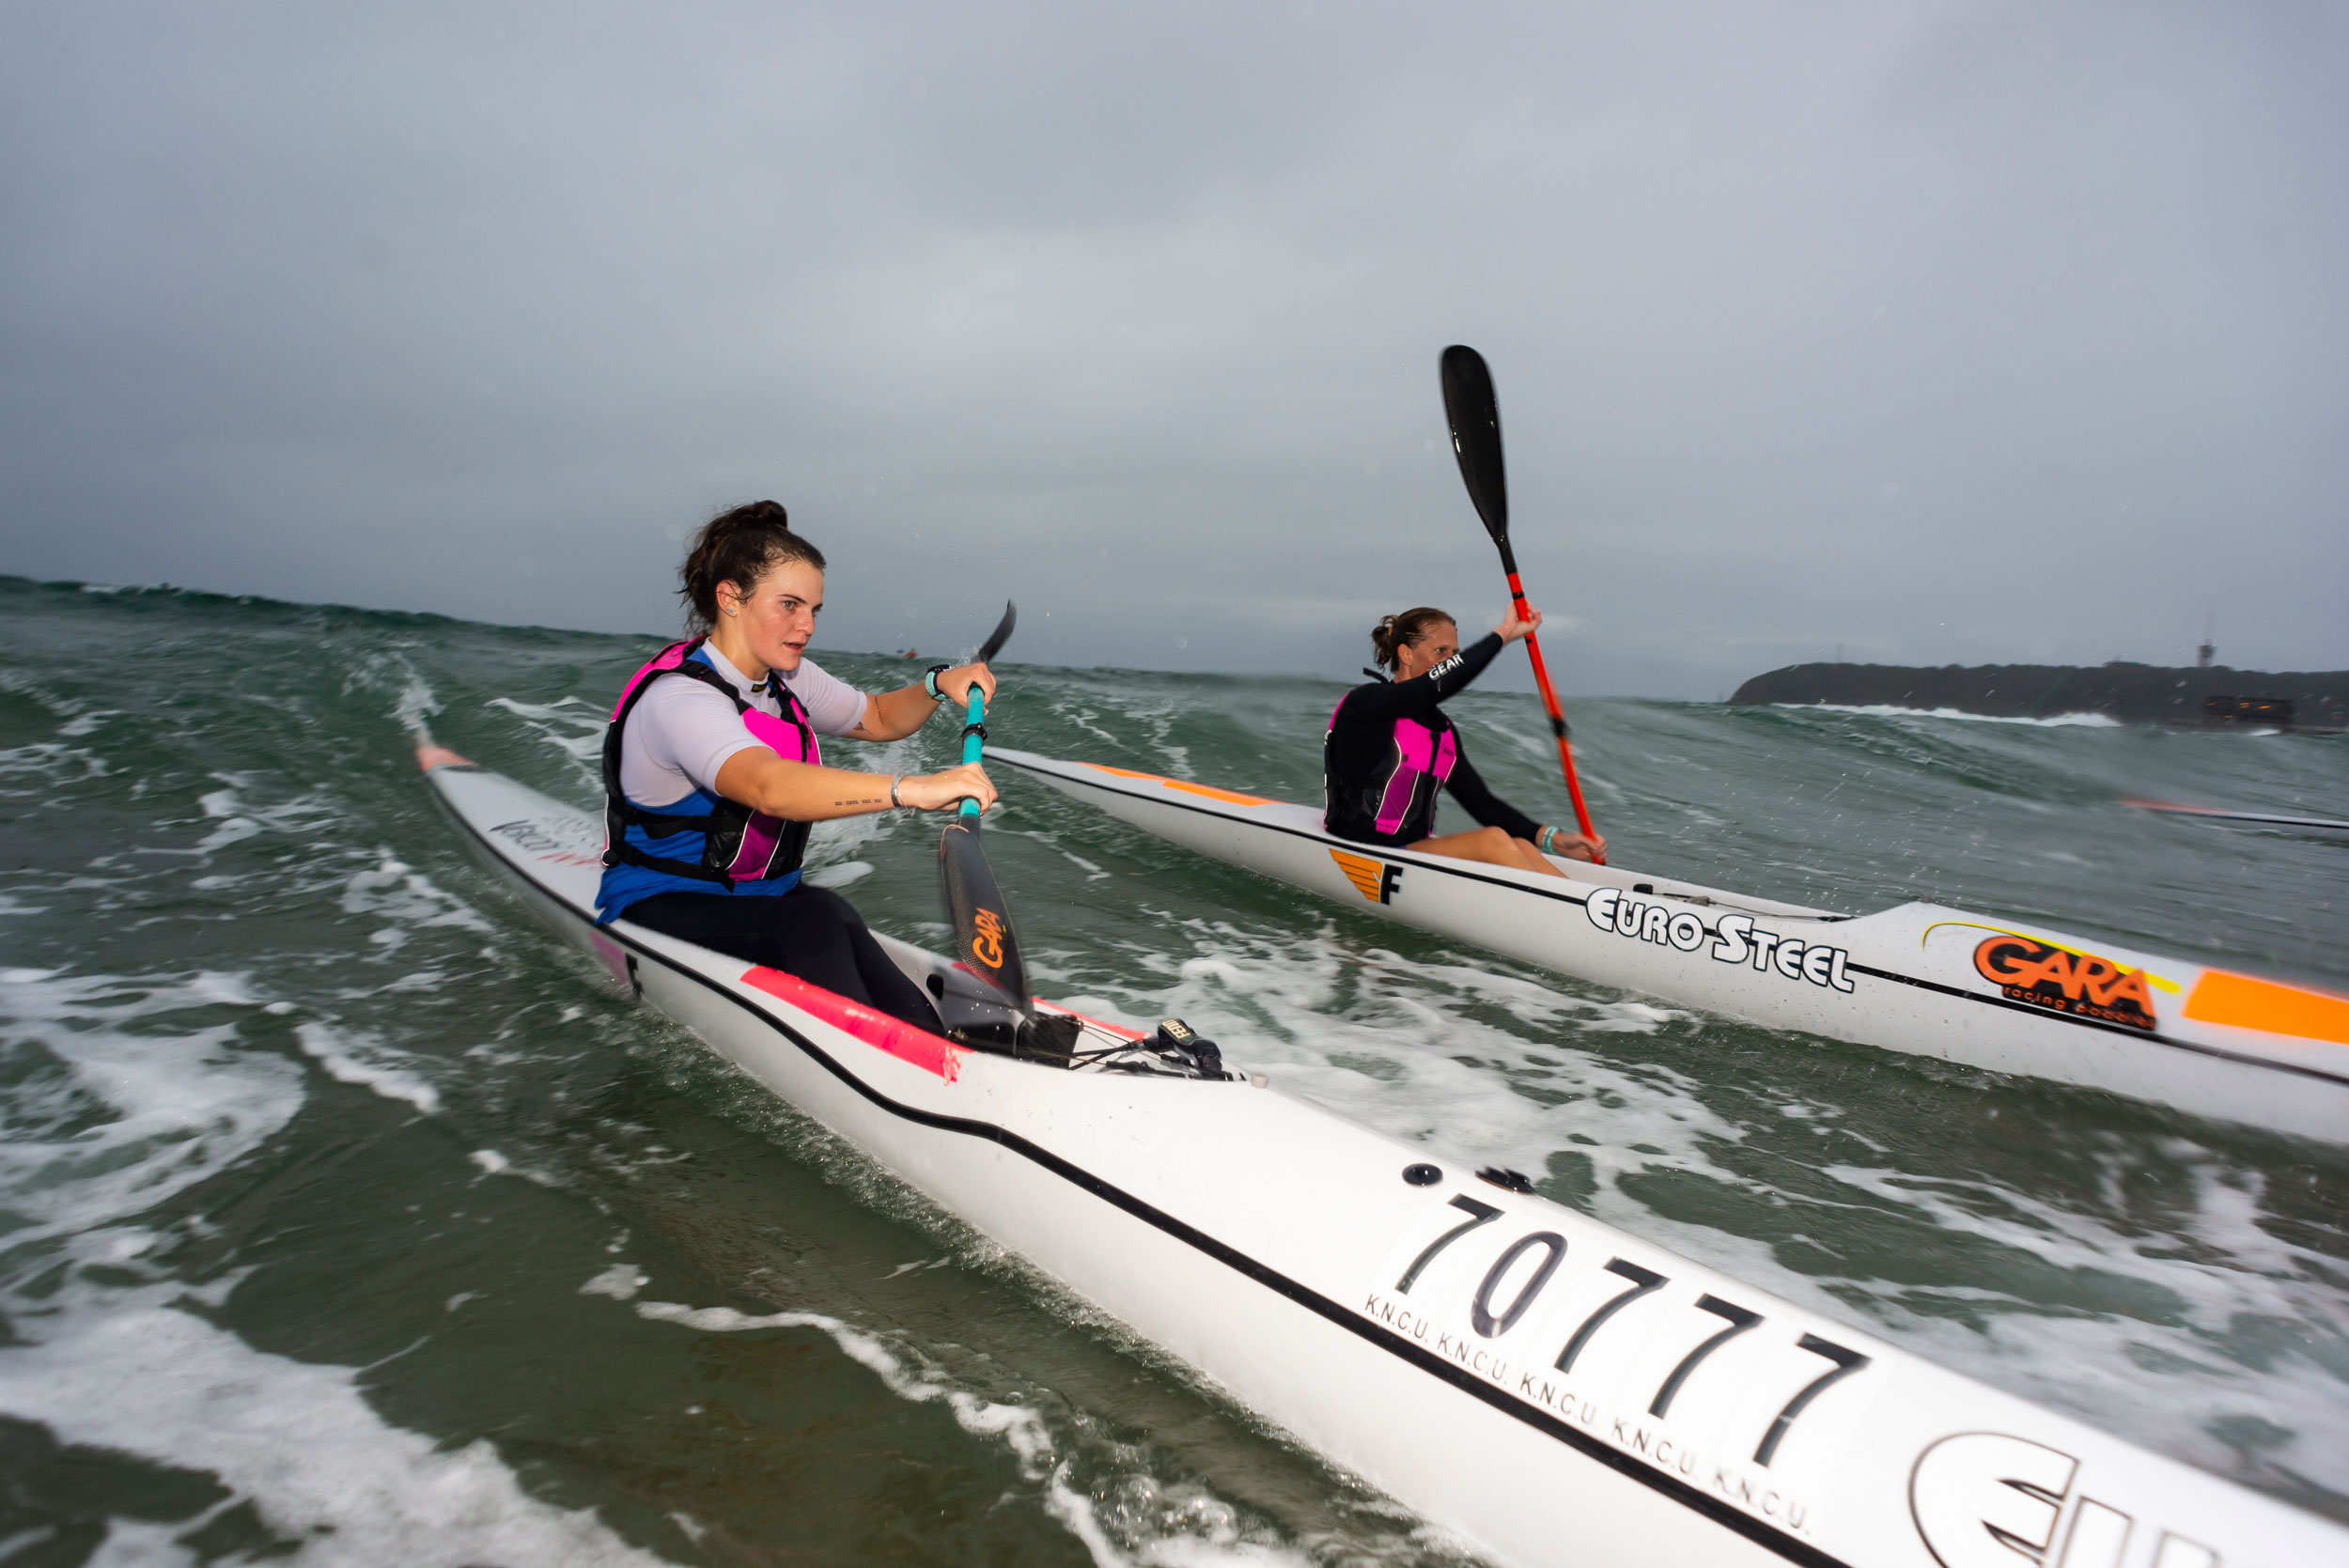 Marine Surfski Series Media Release